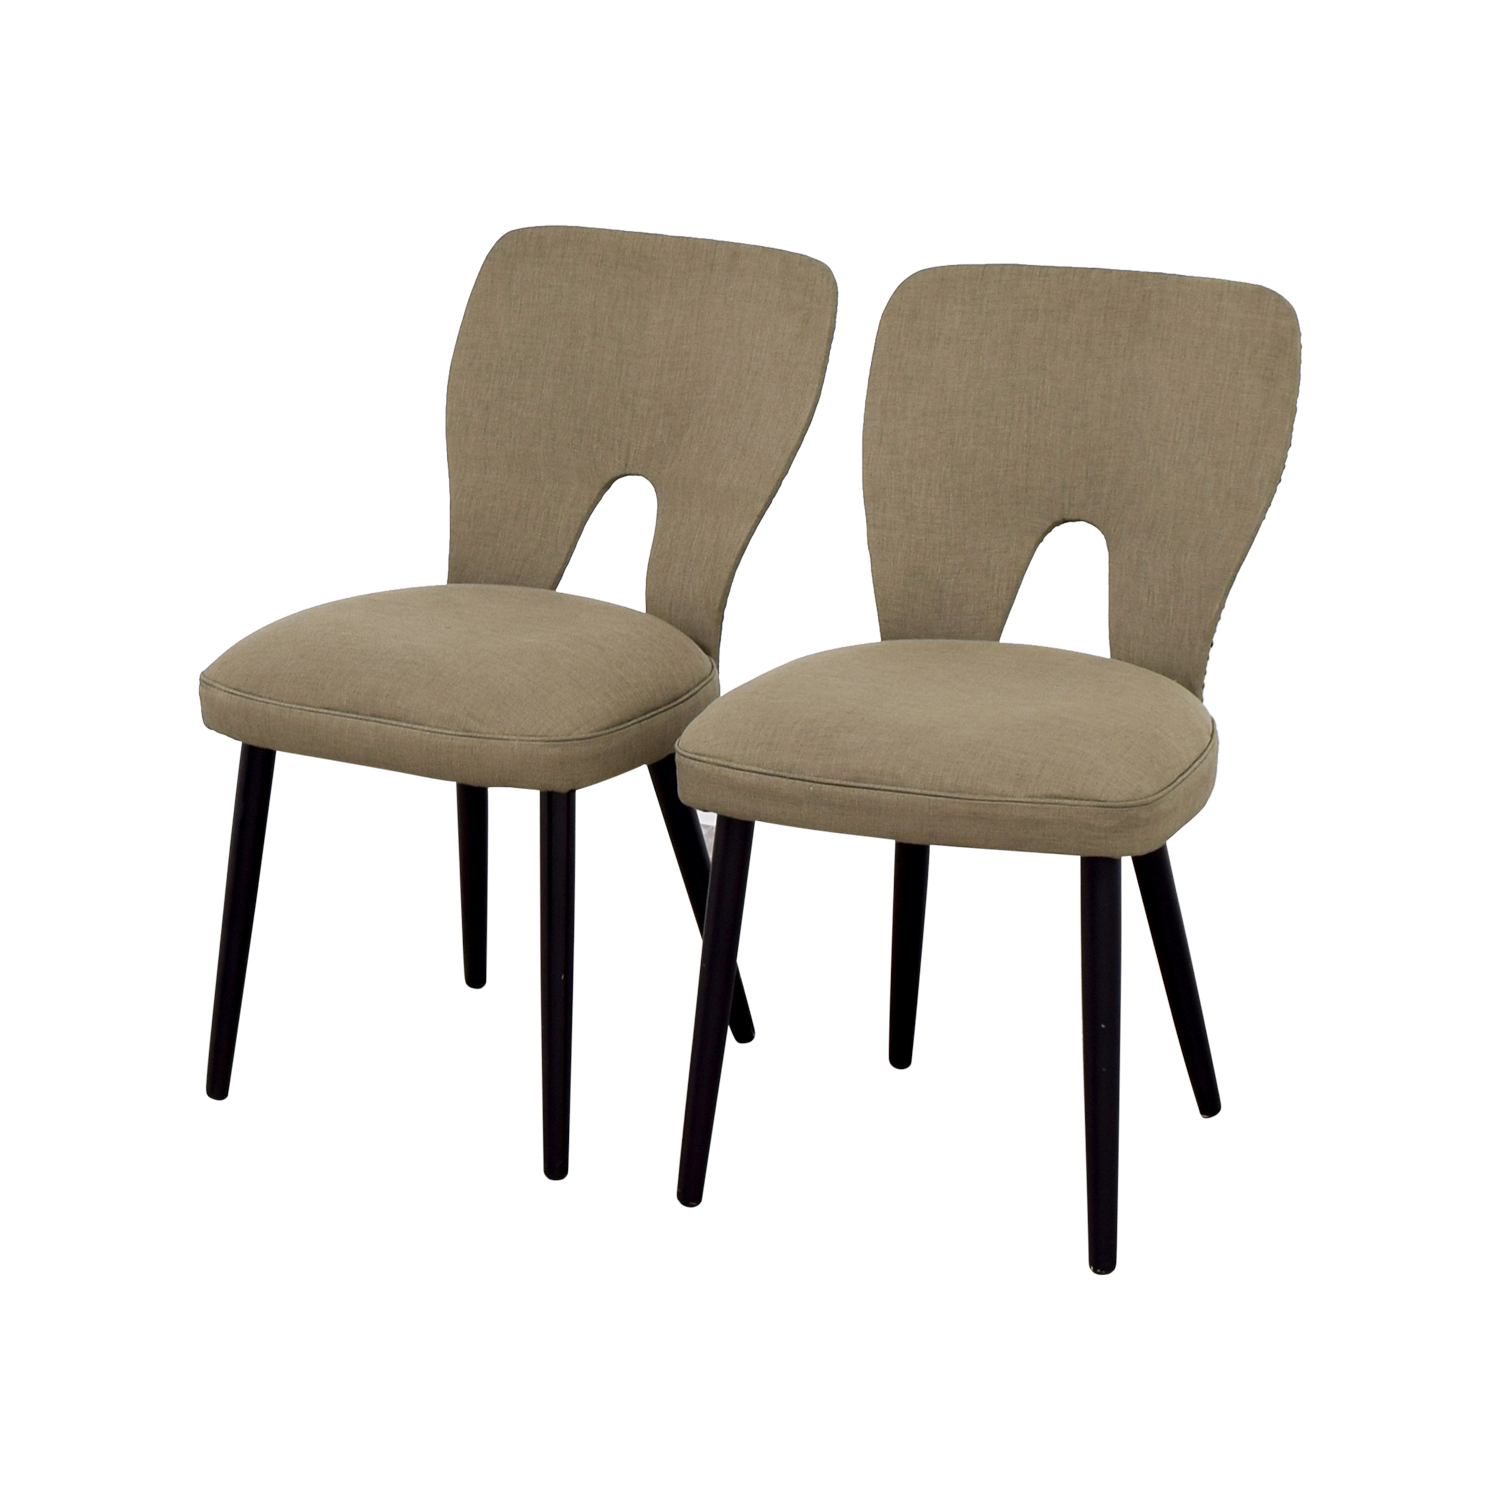 wayfair upholstered beige dining chairs dining chairs - Wayfair Dining Chairs